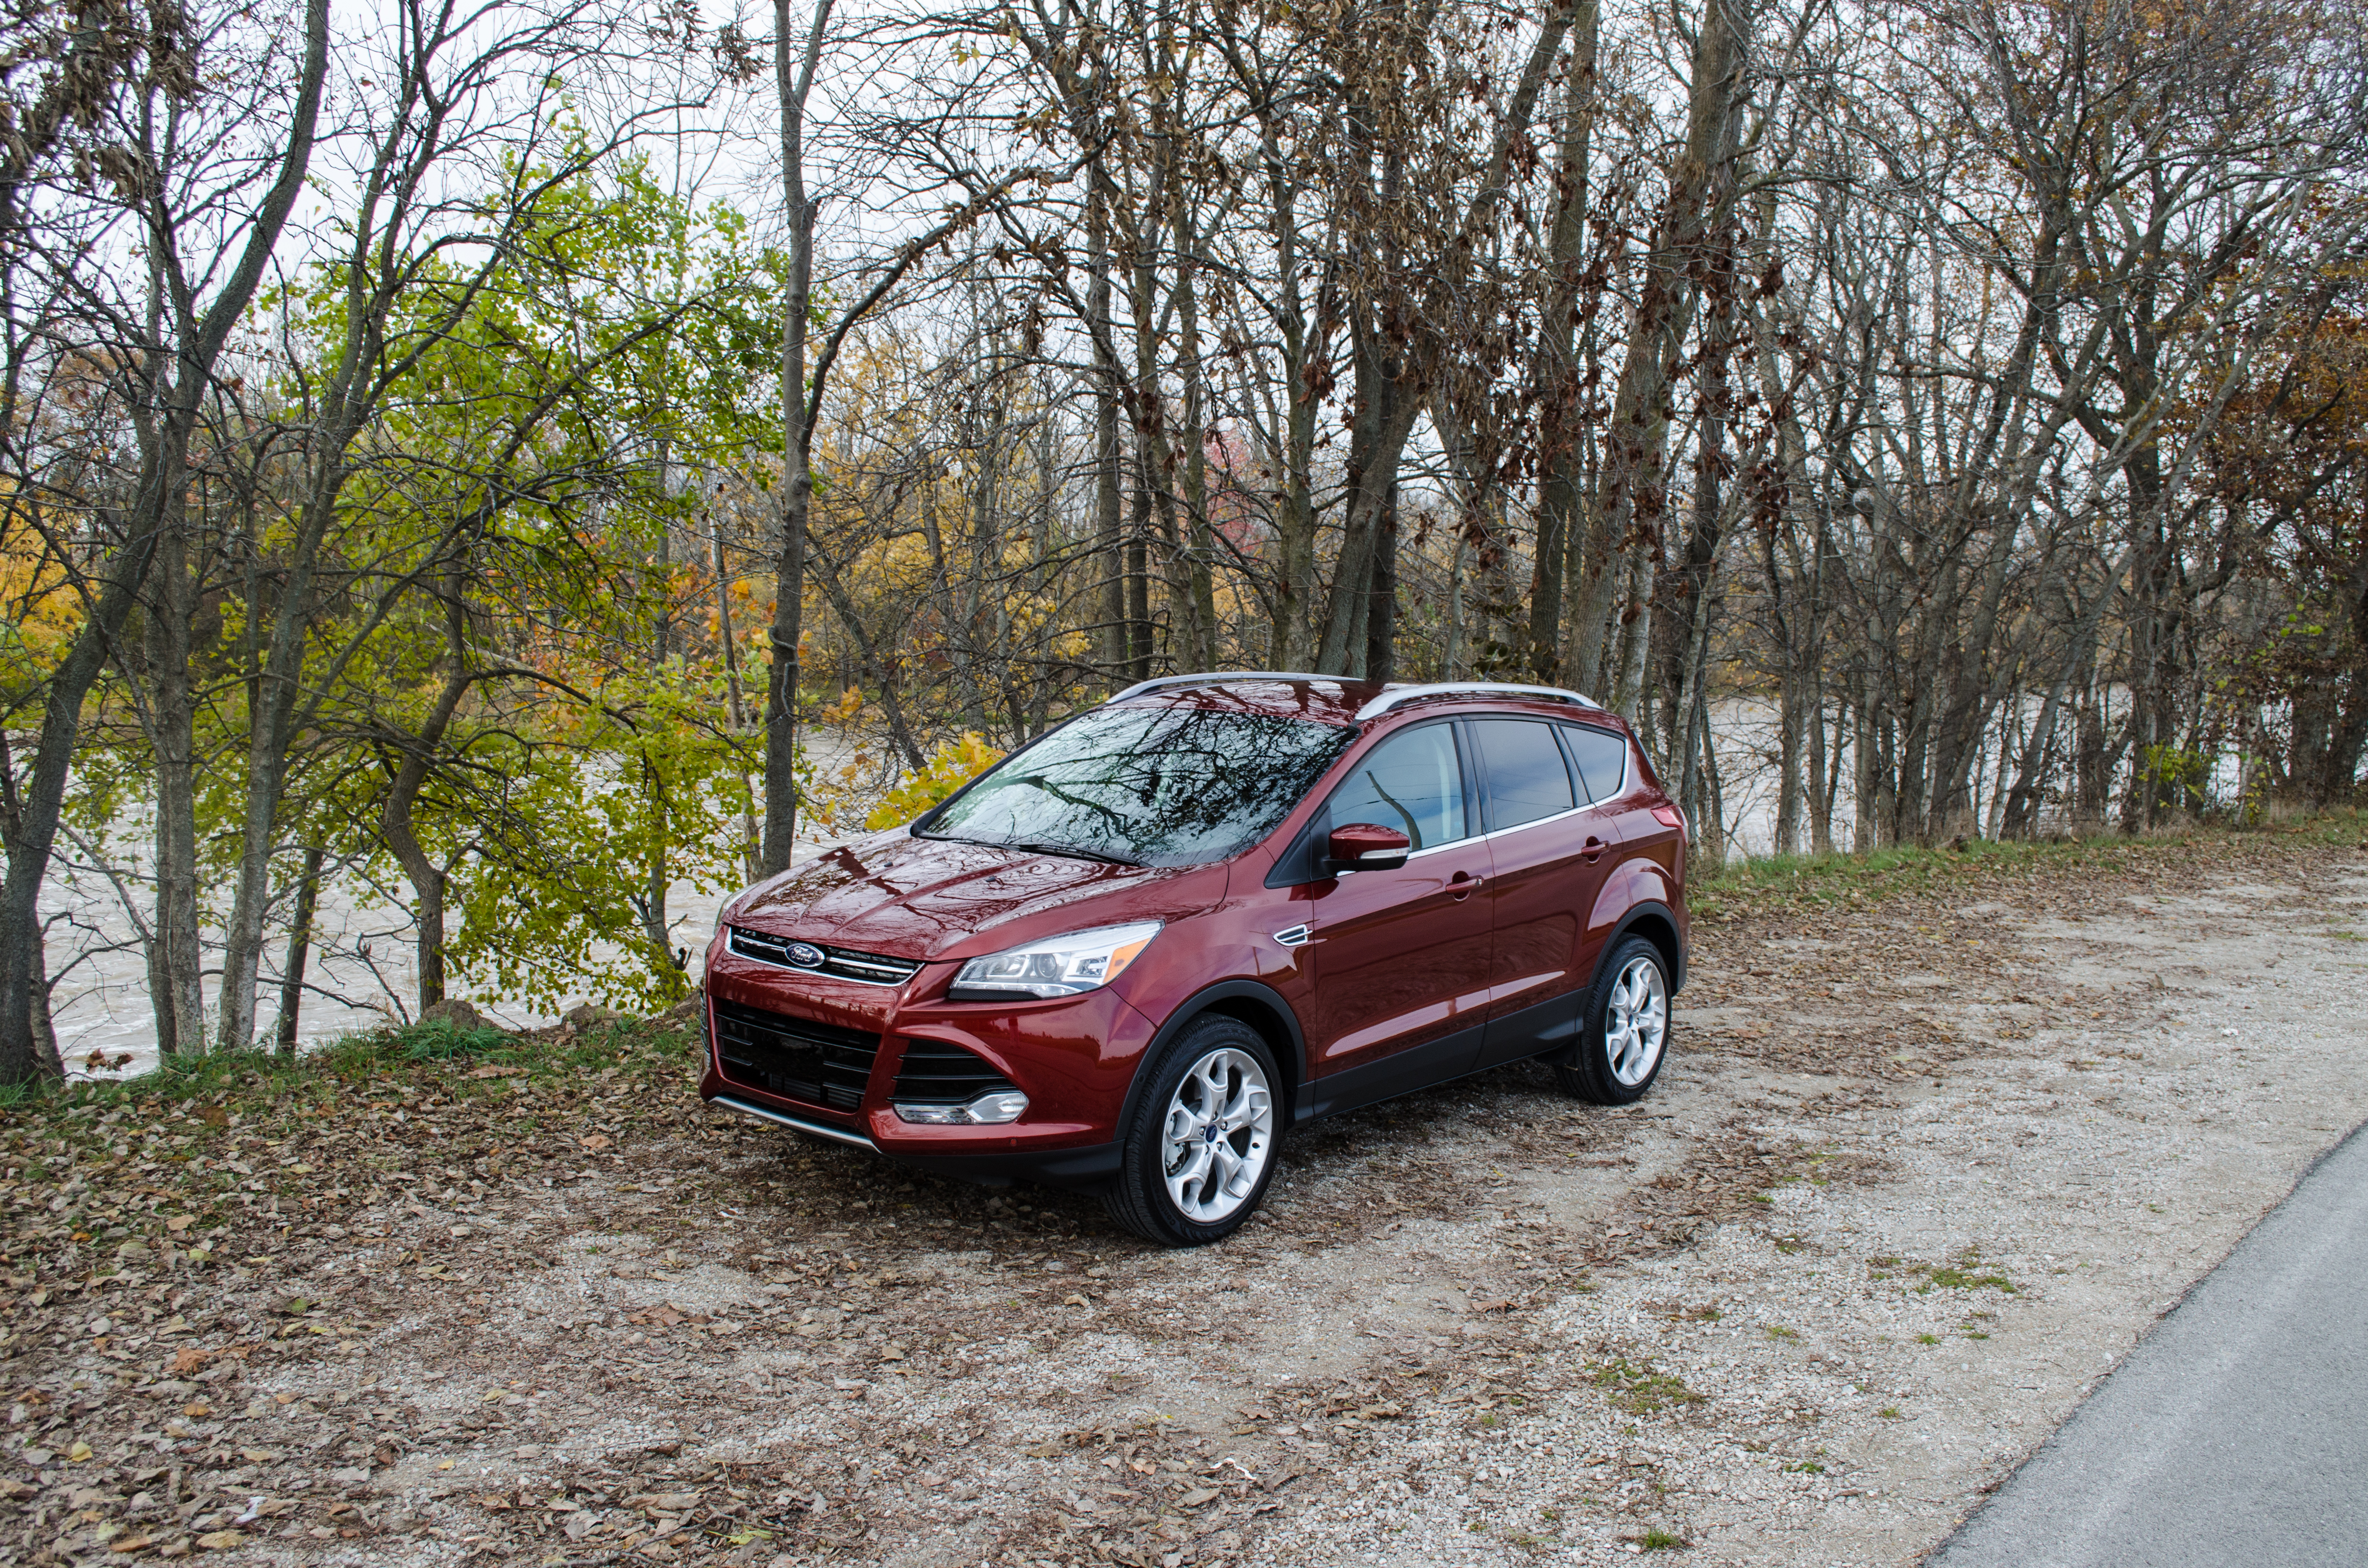 2014 Ford Escape Titanium 18 Of 34 Motor Review